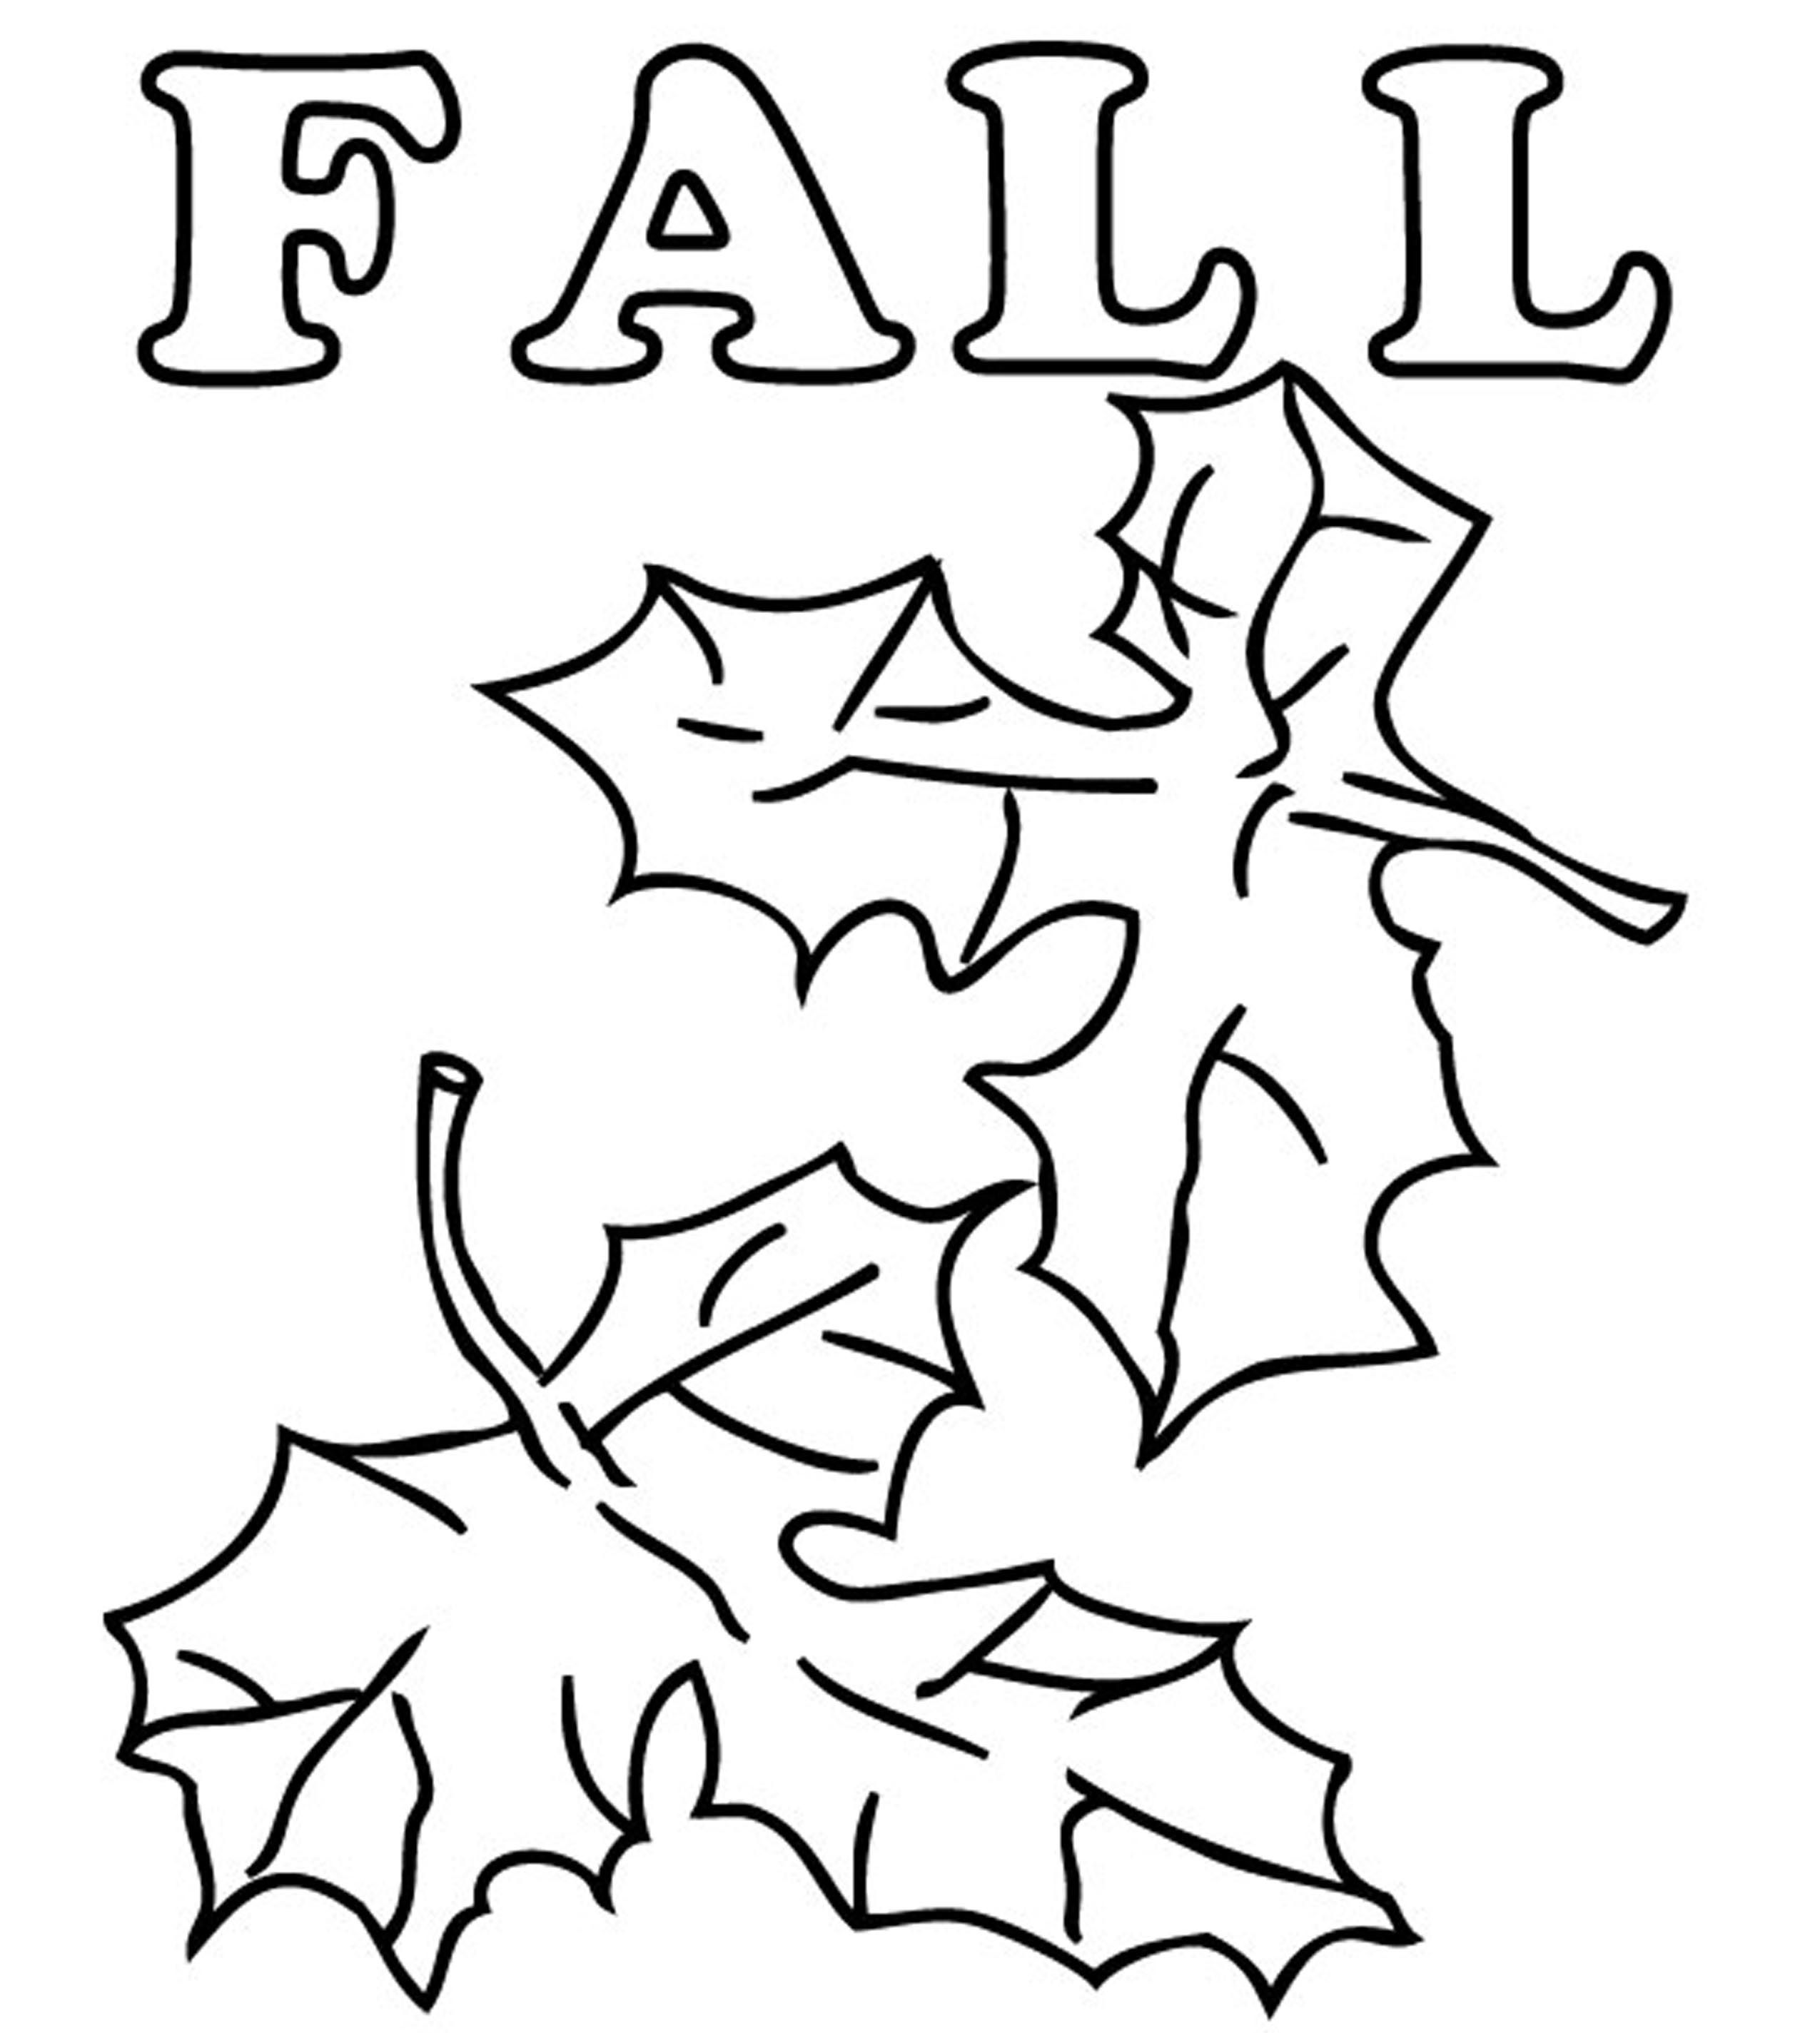 coloring pictures fall free printable fall coloring pages for kids best fall pictures coloring